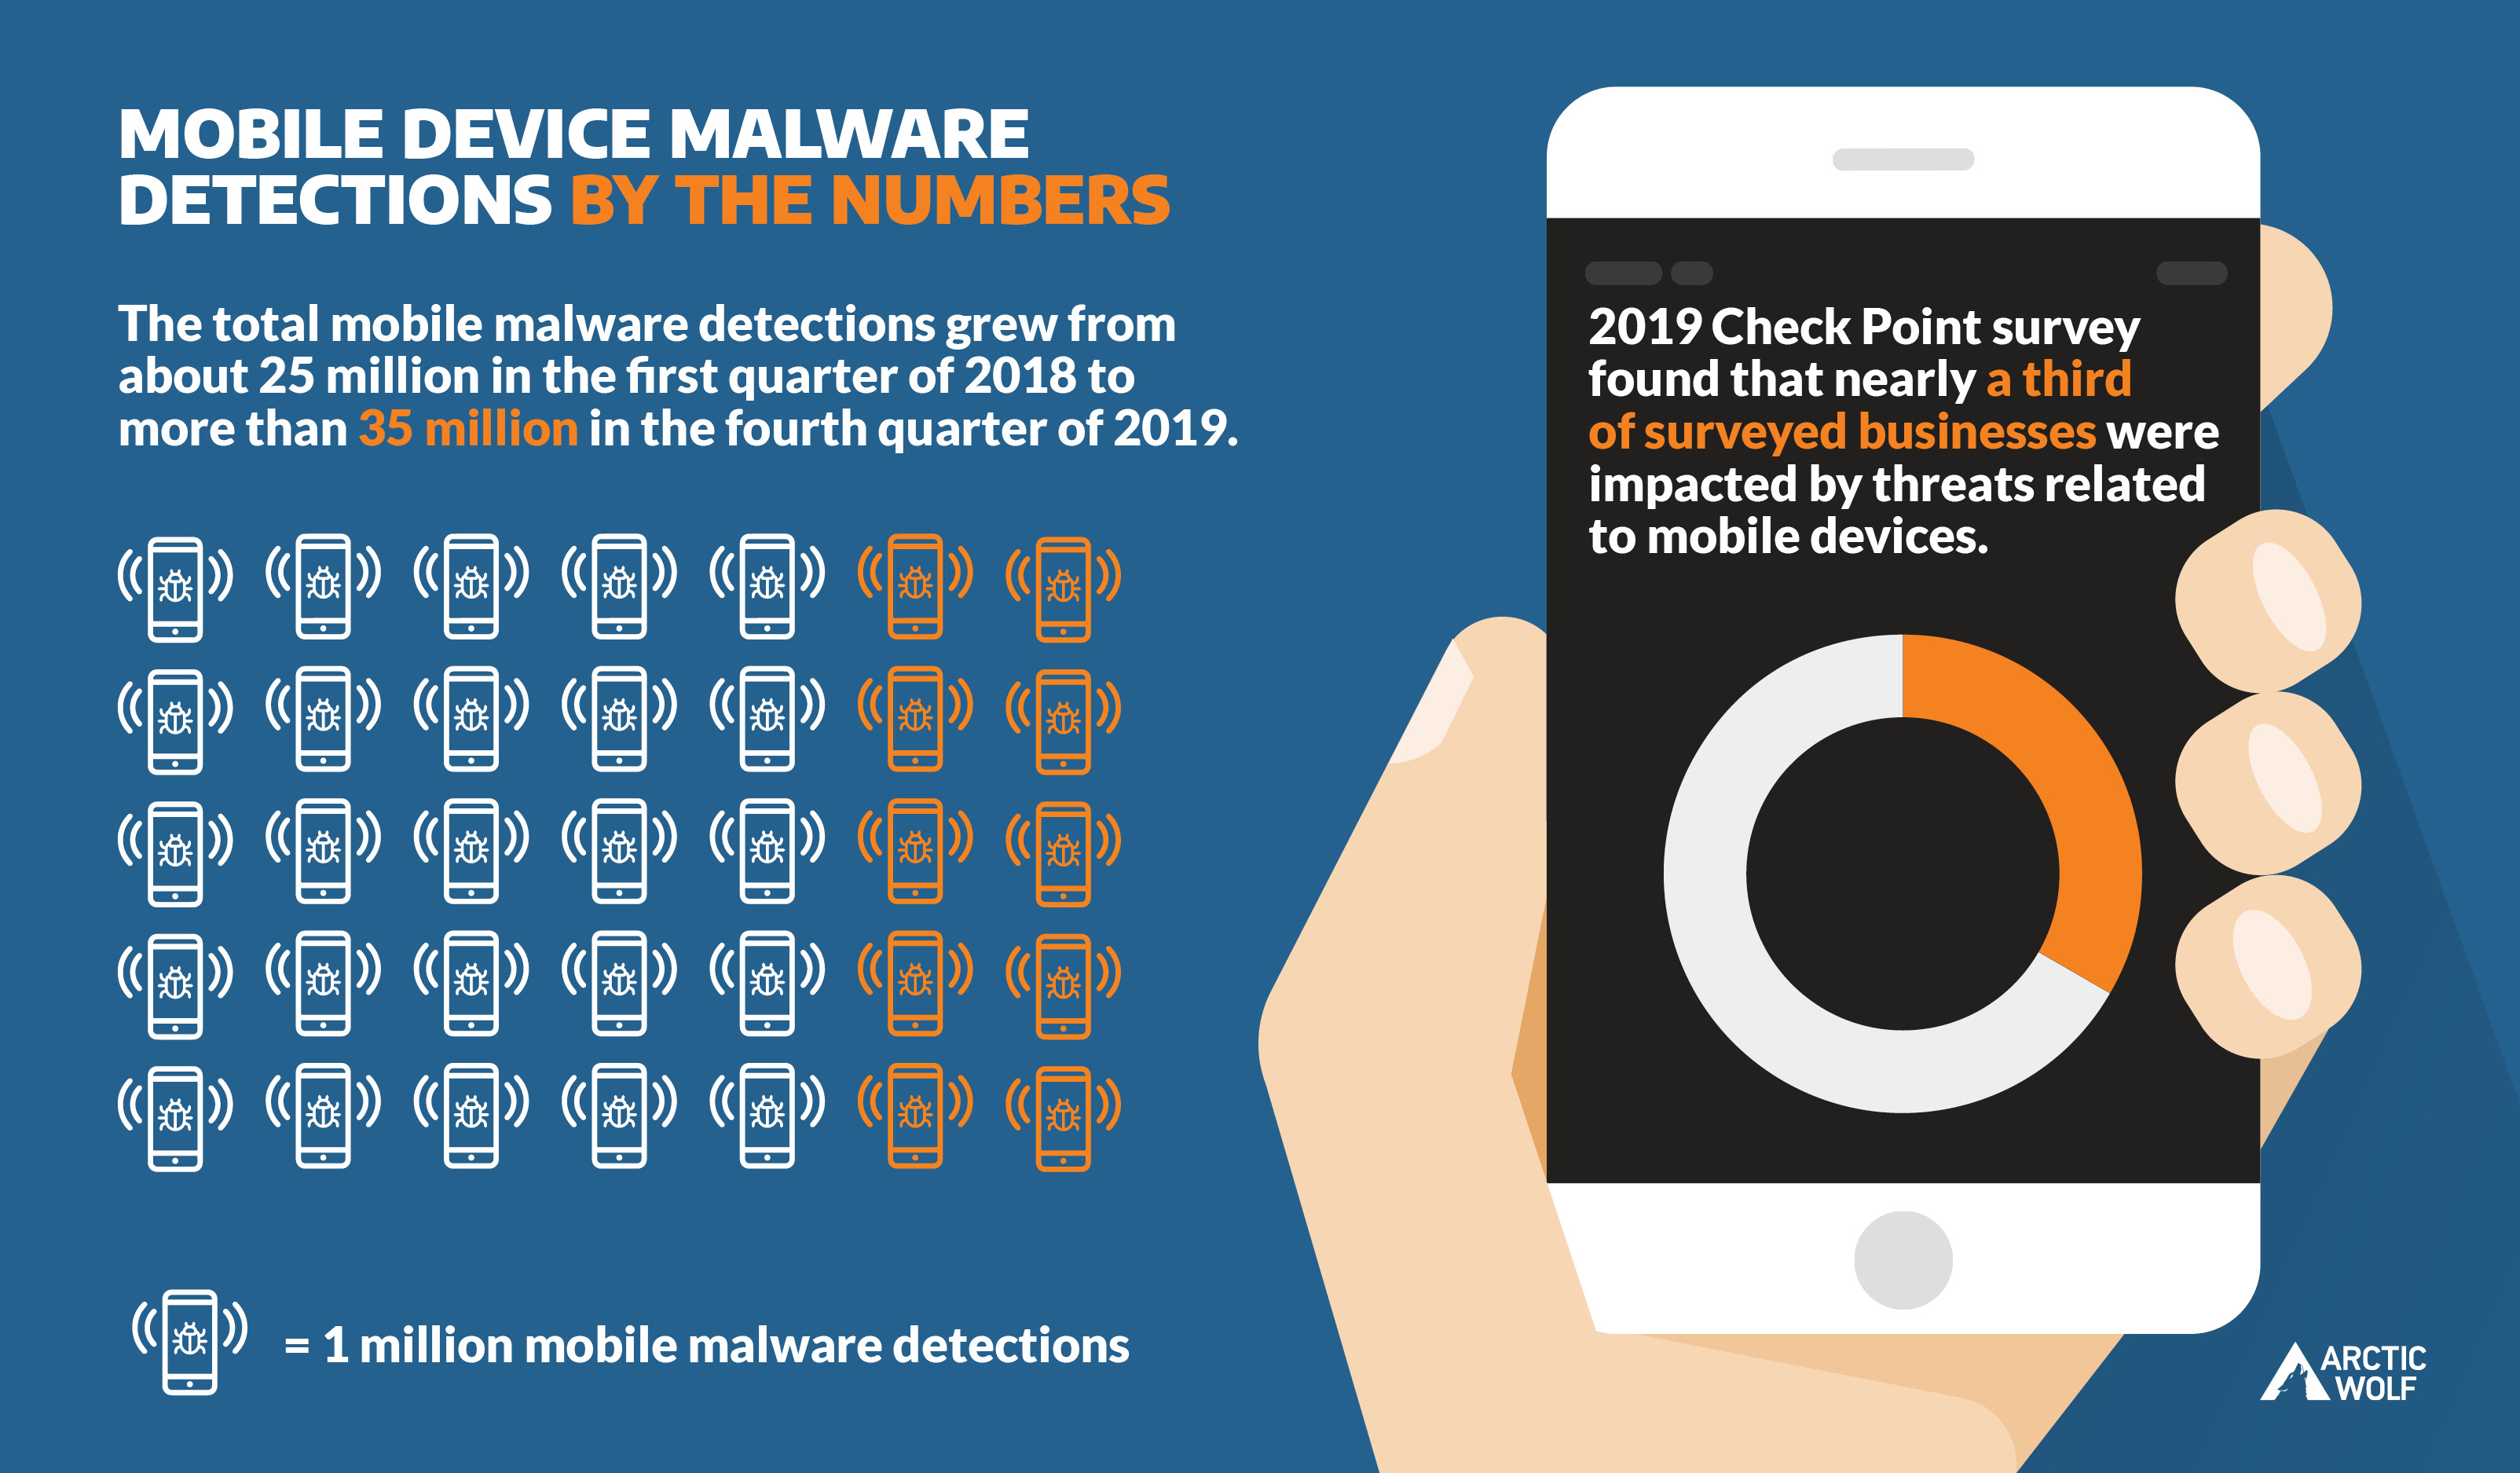 Graphic of Mobile Device malware detections by the numbers. Detections grew from 25 million in 2018 to 35 million at end of 2019.